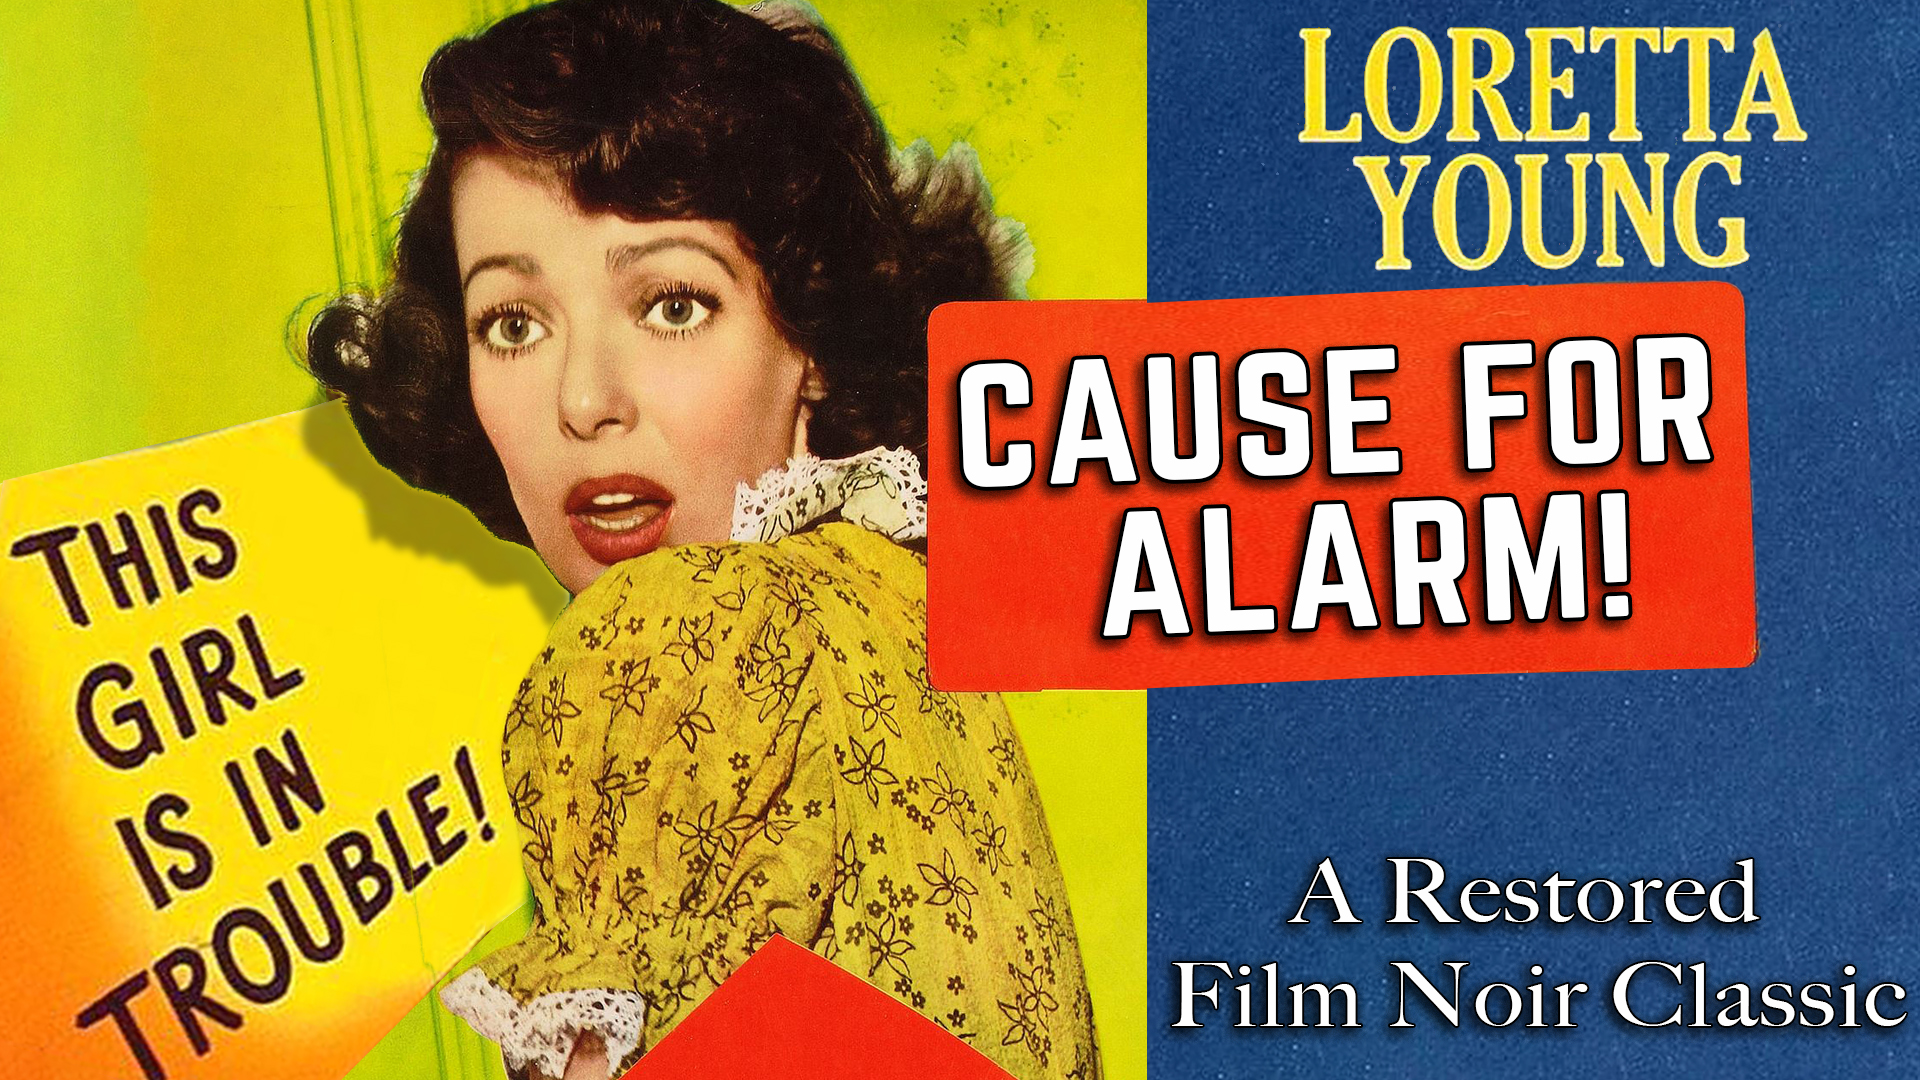 Loretta Young In Cause For Alarm! - A Restored Film Noir Classic